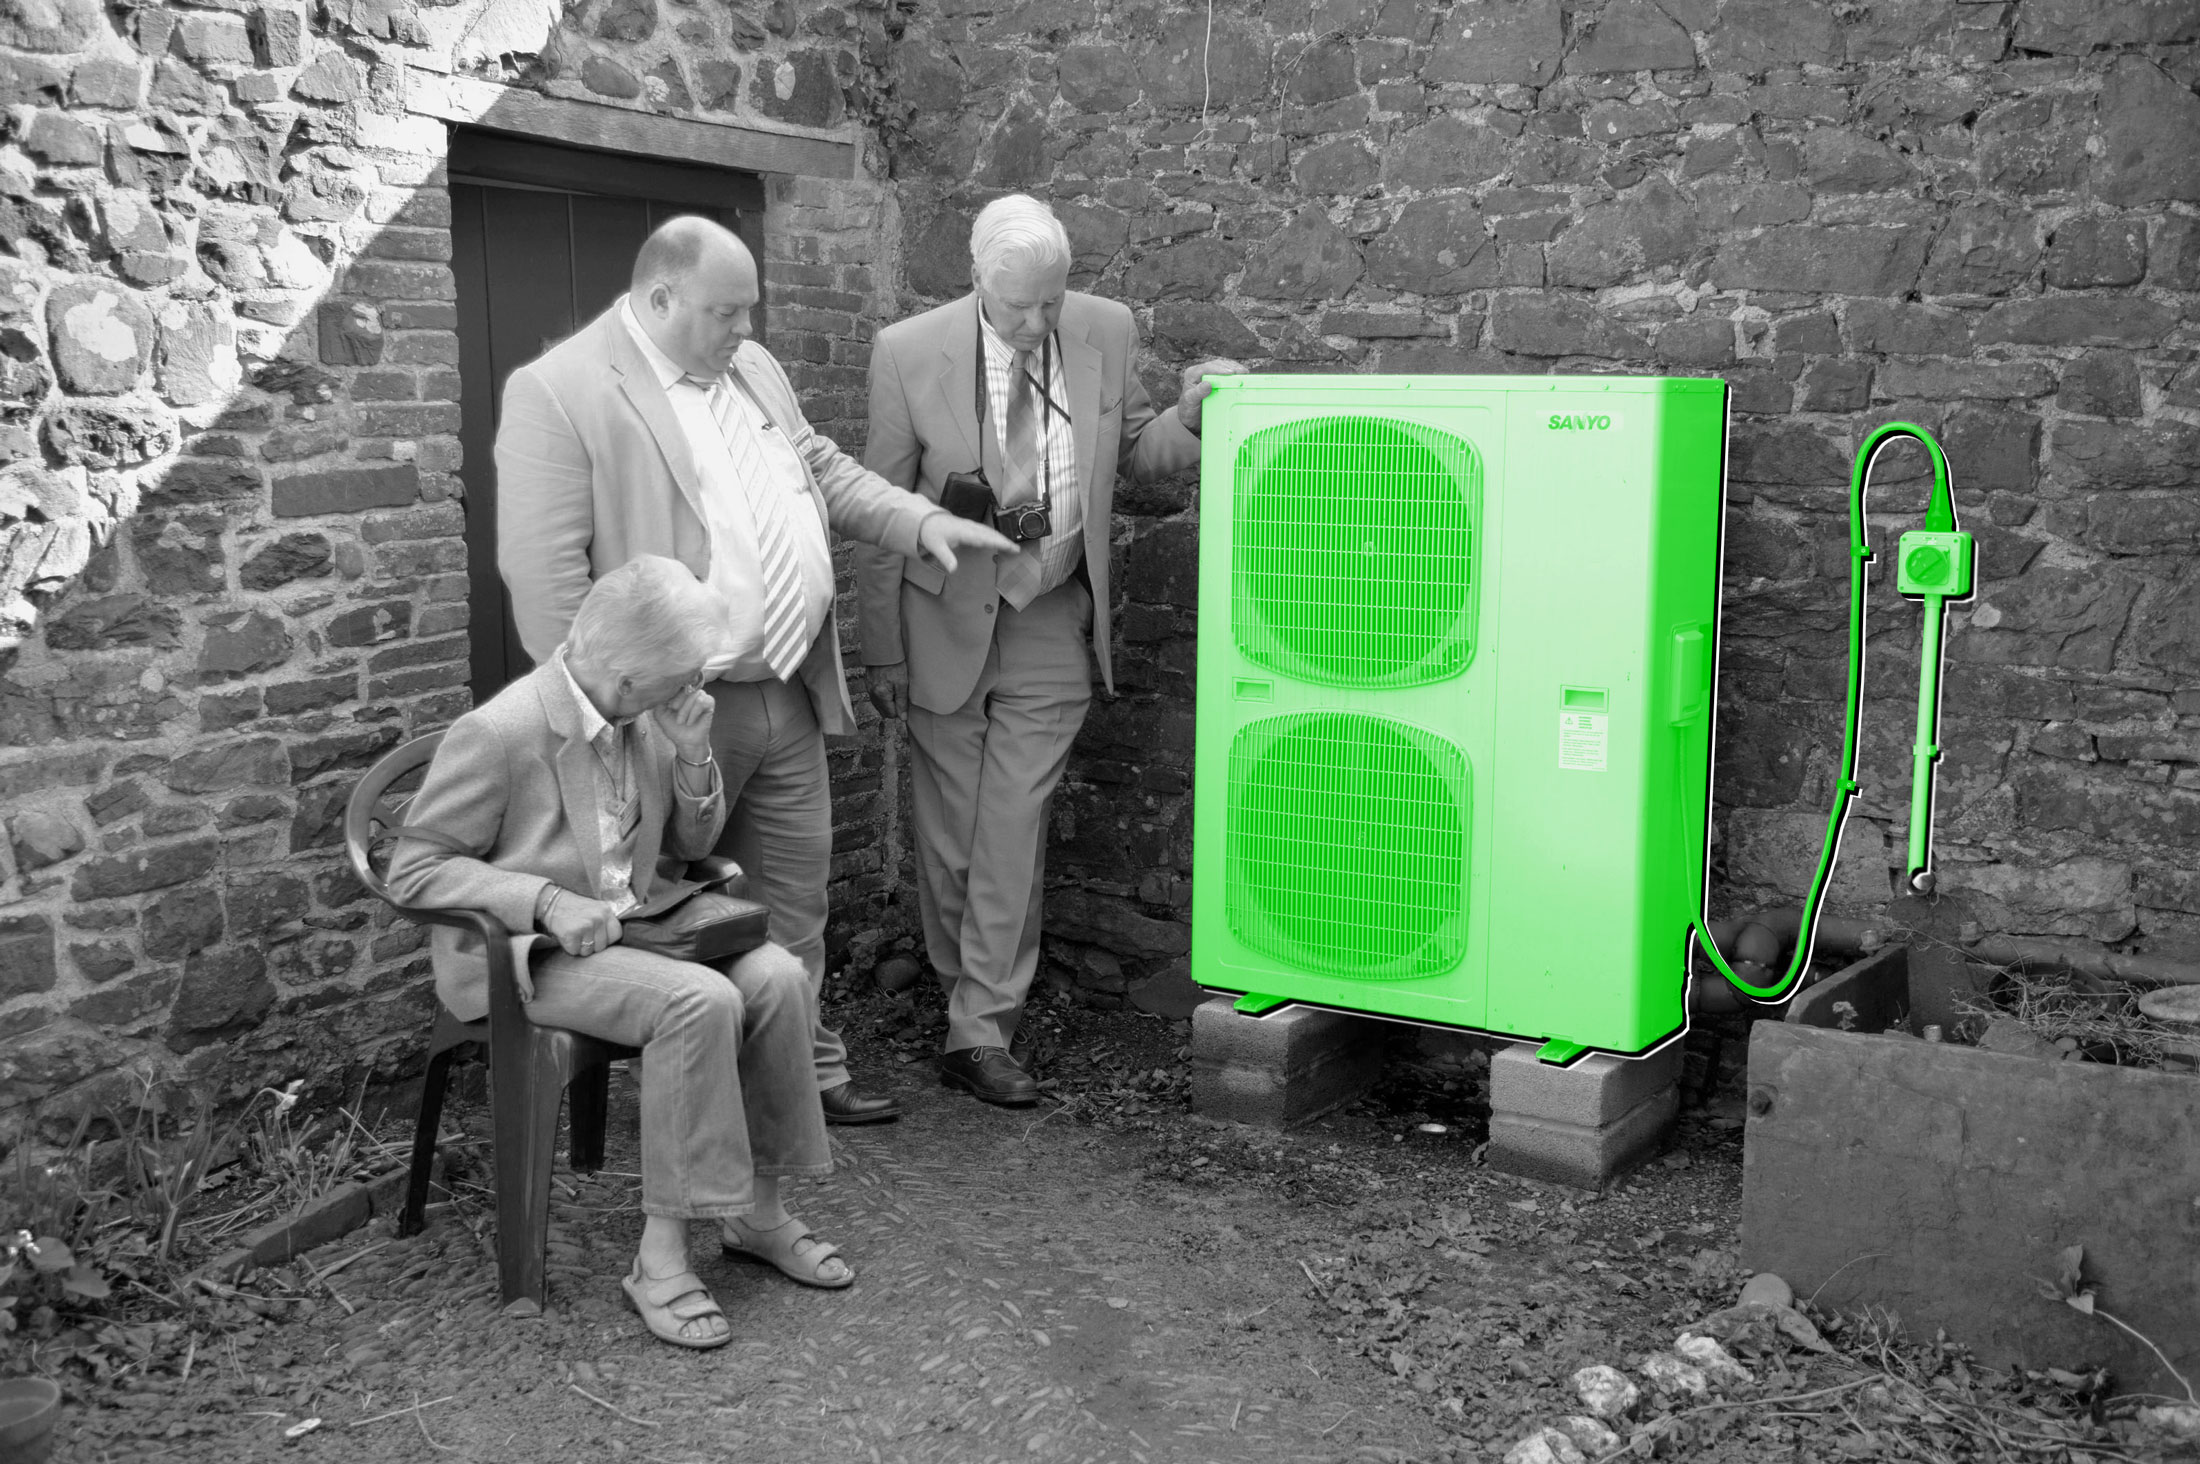 Construction sector urged to 'step-up' in race to adopt greener heating solutions